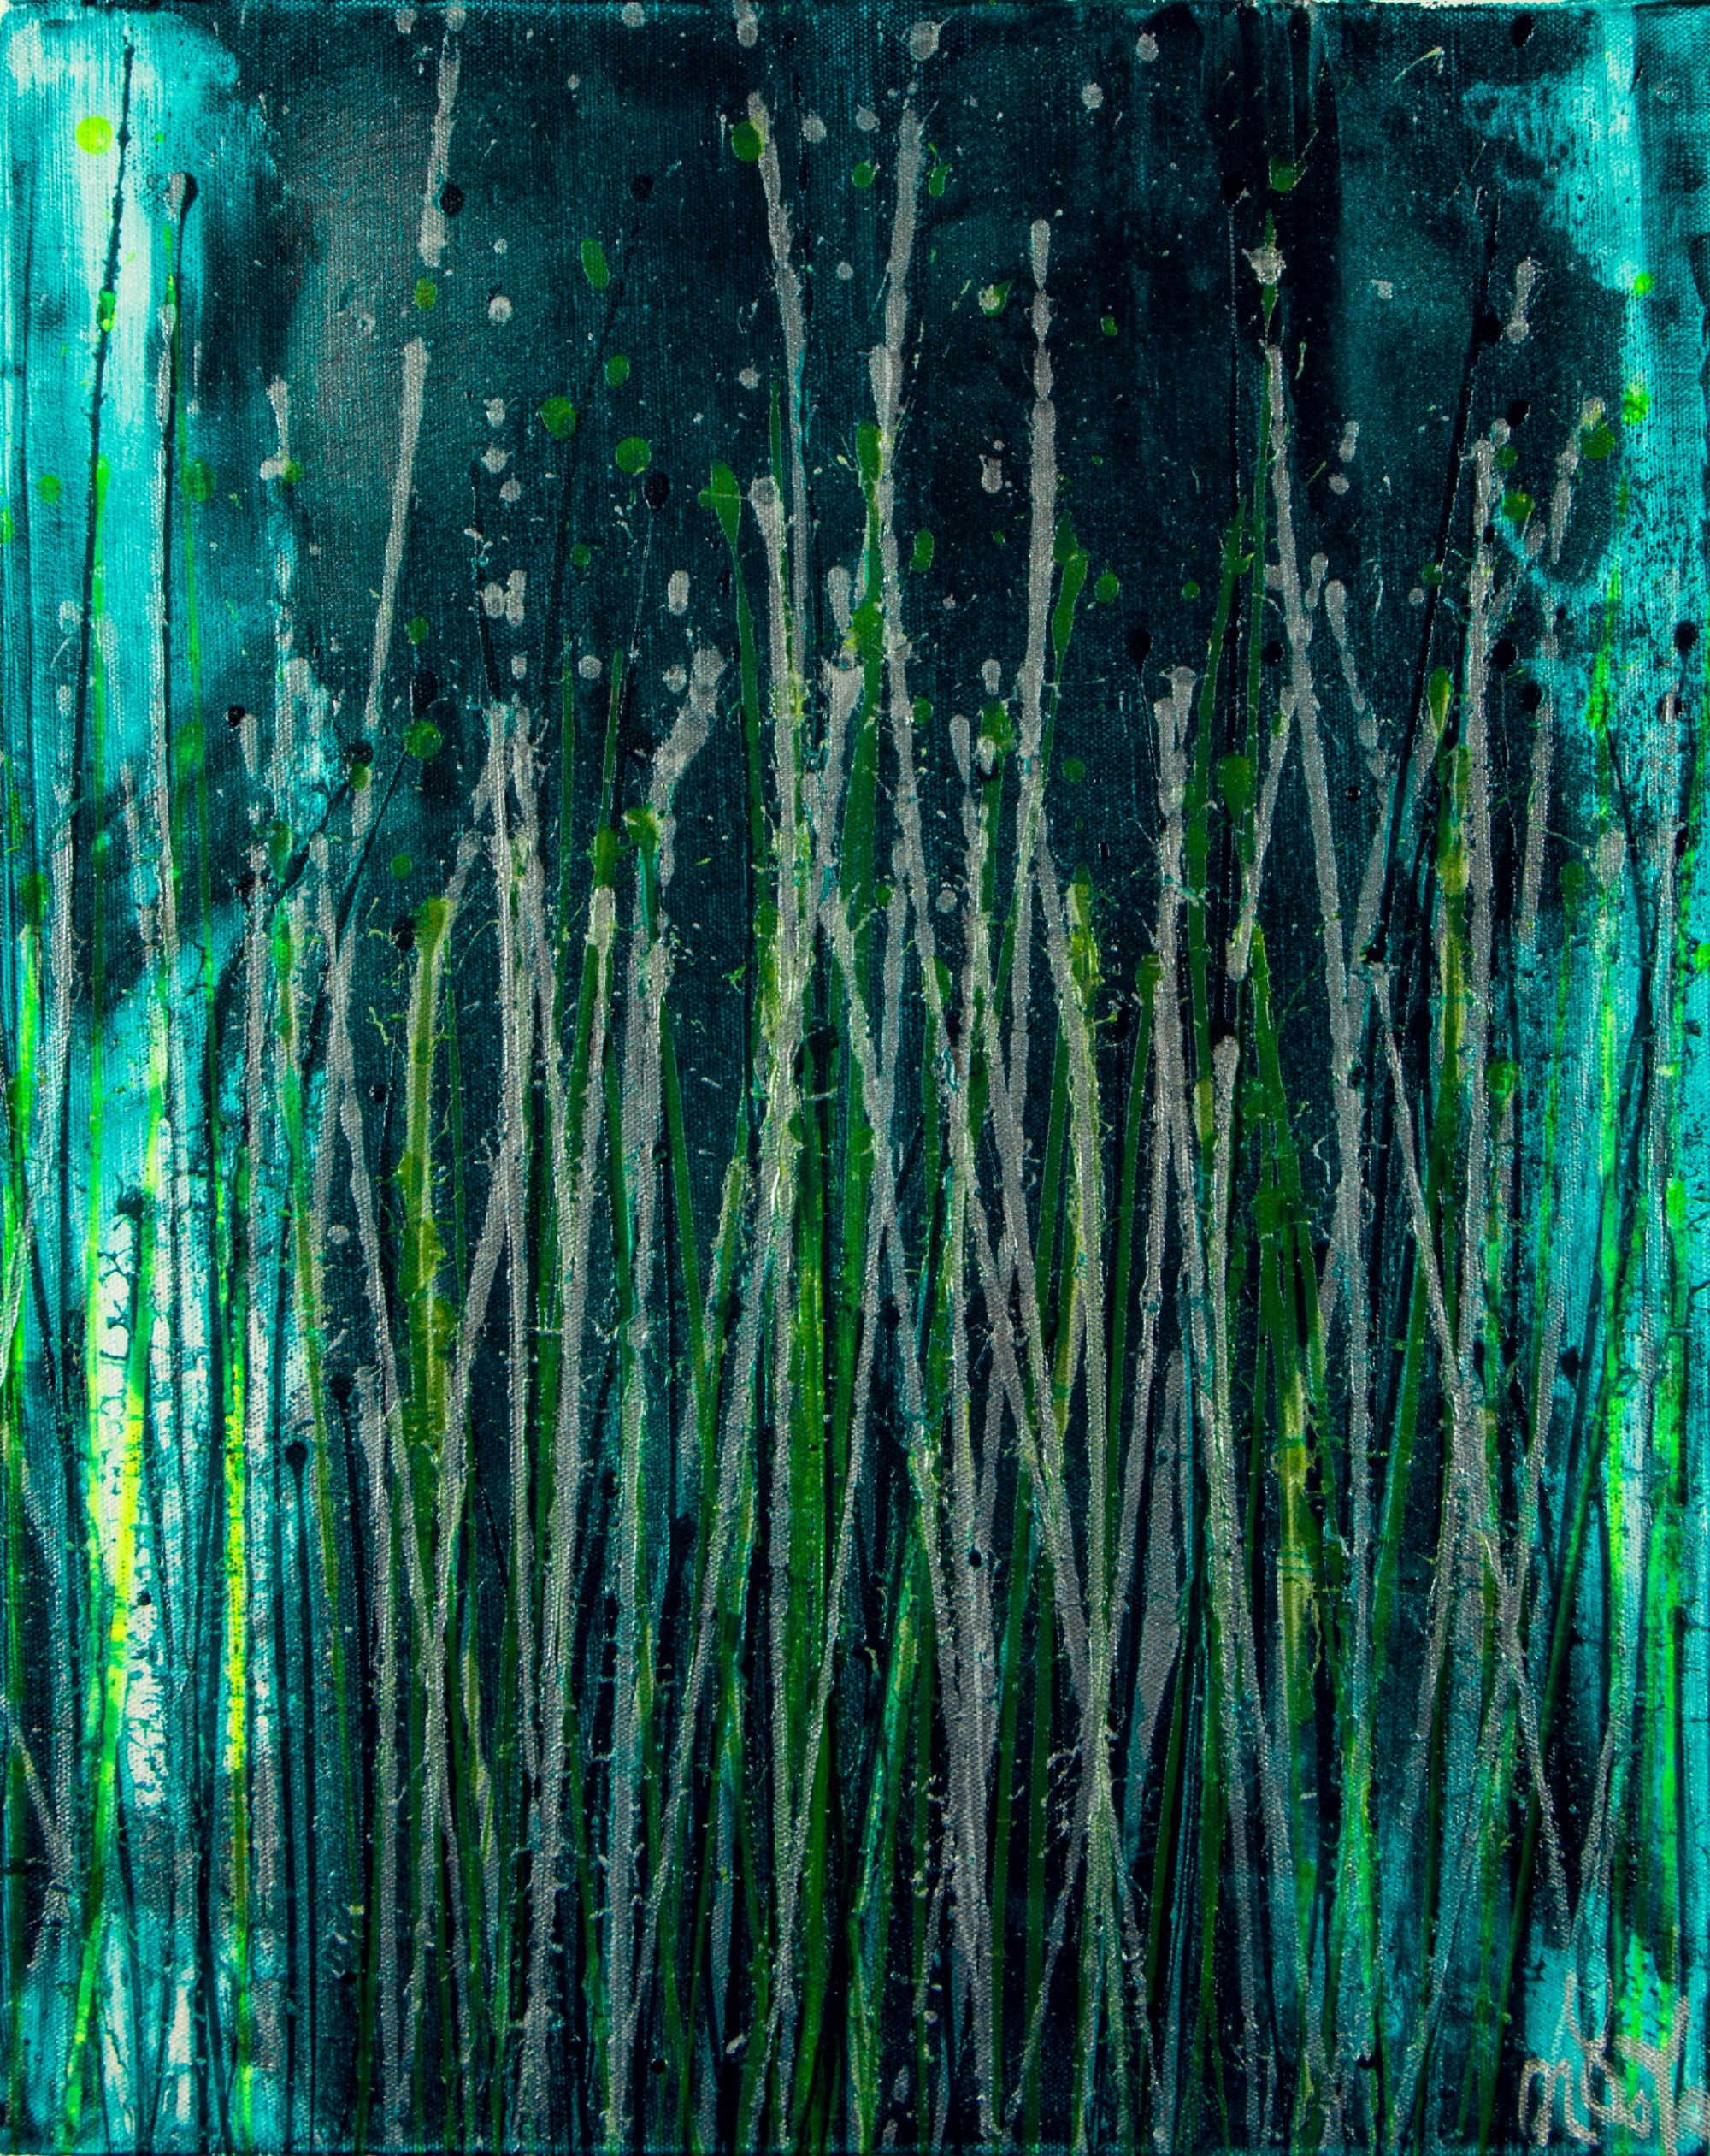 Canvas 3 - Vernal Garden (With Green and Silver) (2021) - Triptych